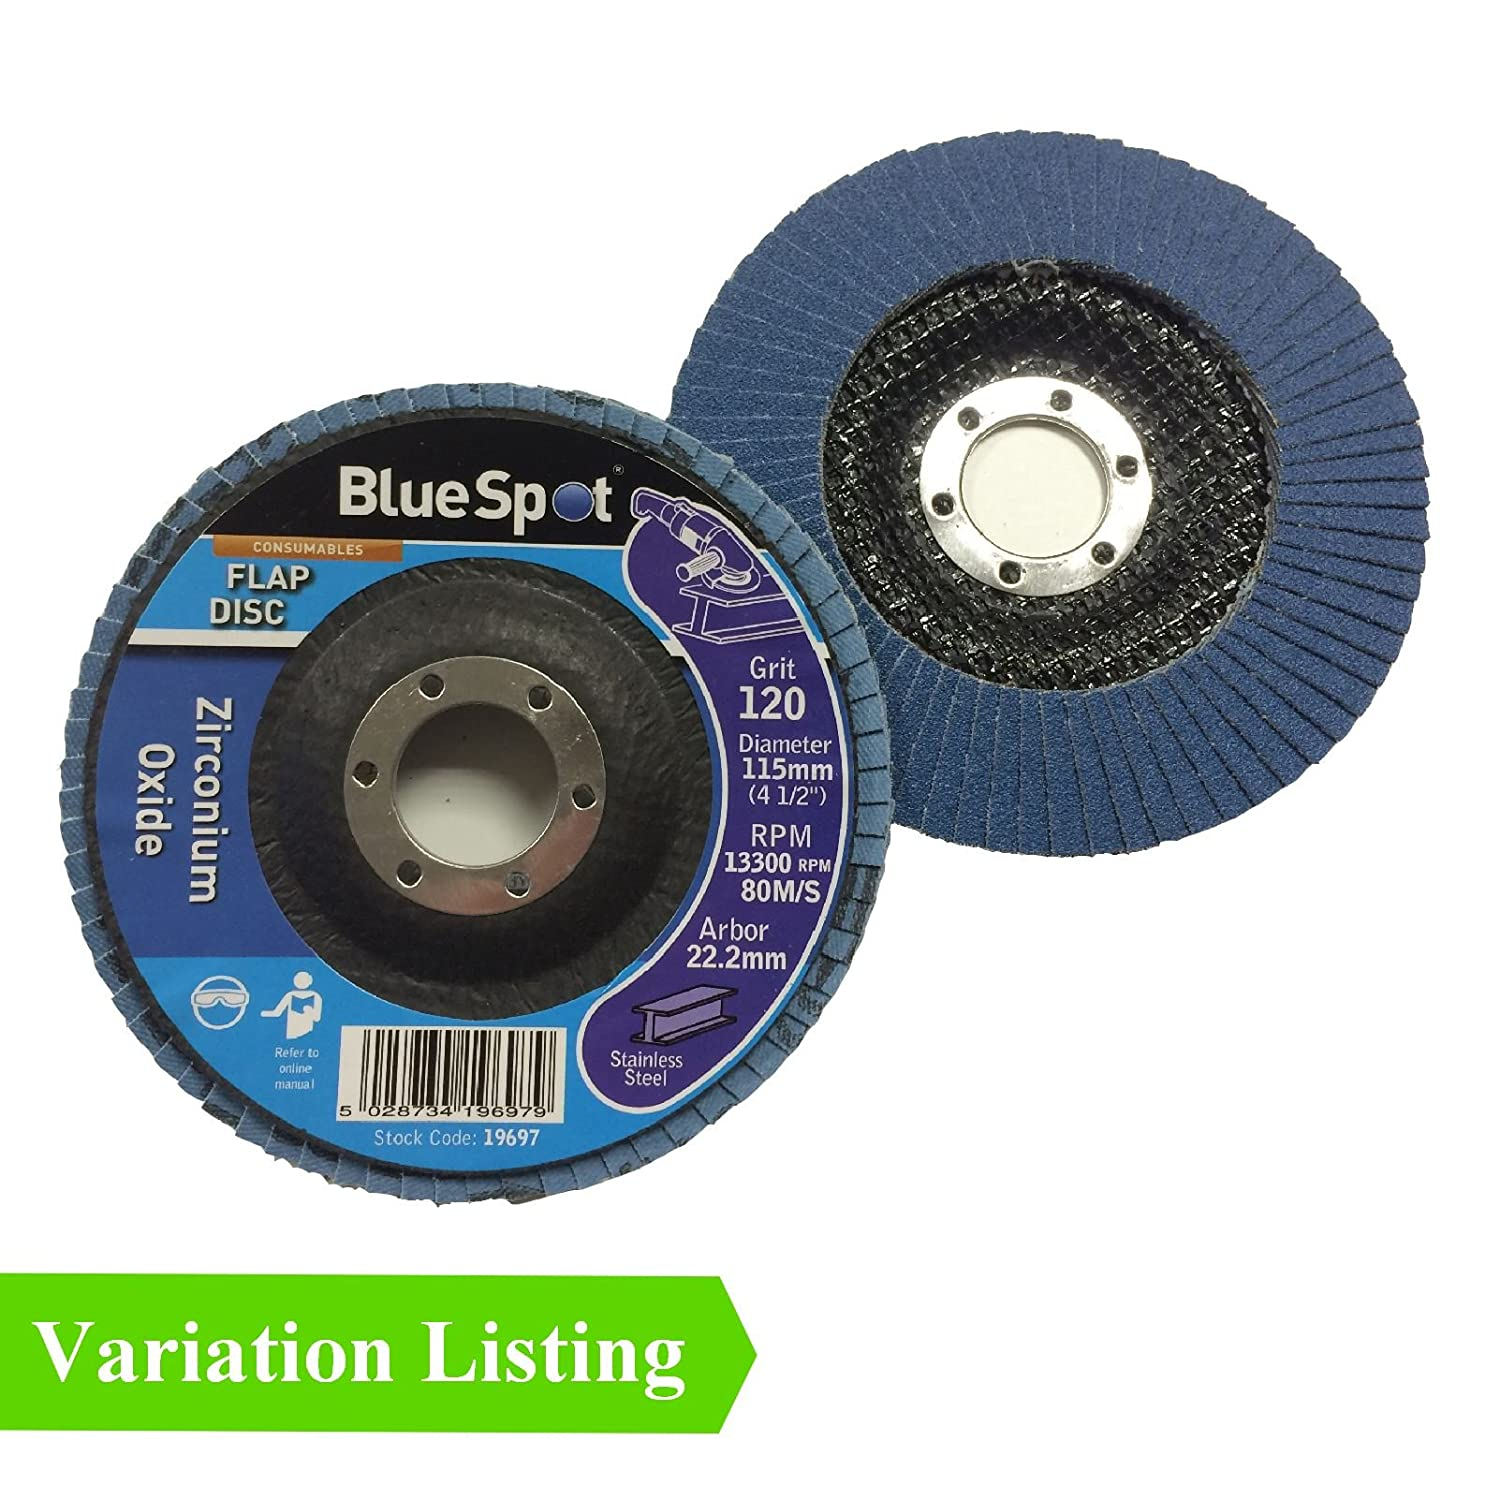 10 x 115mm Flap Disc 120 Grit Angle Grinder Sanding High Quality Zirconium Oxide Home.smart